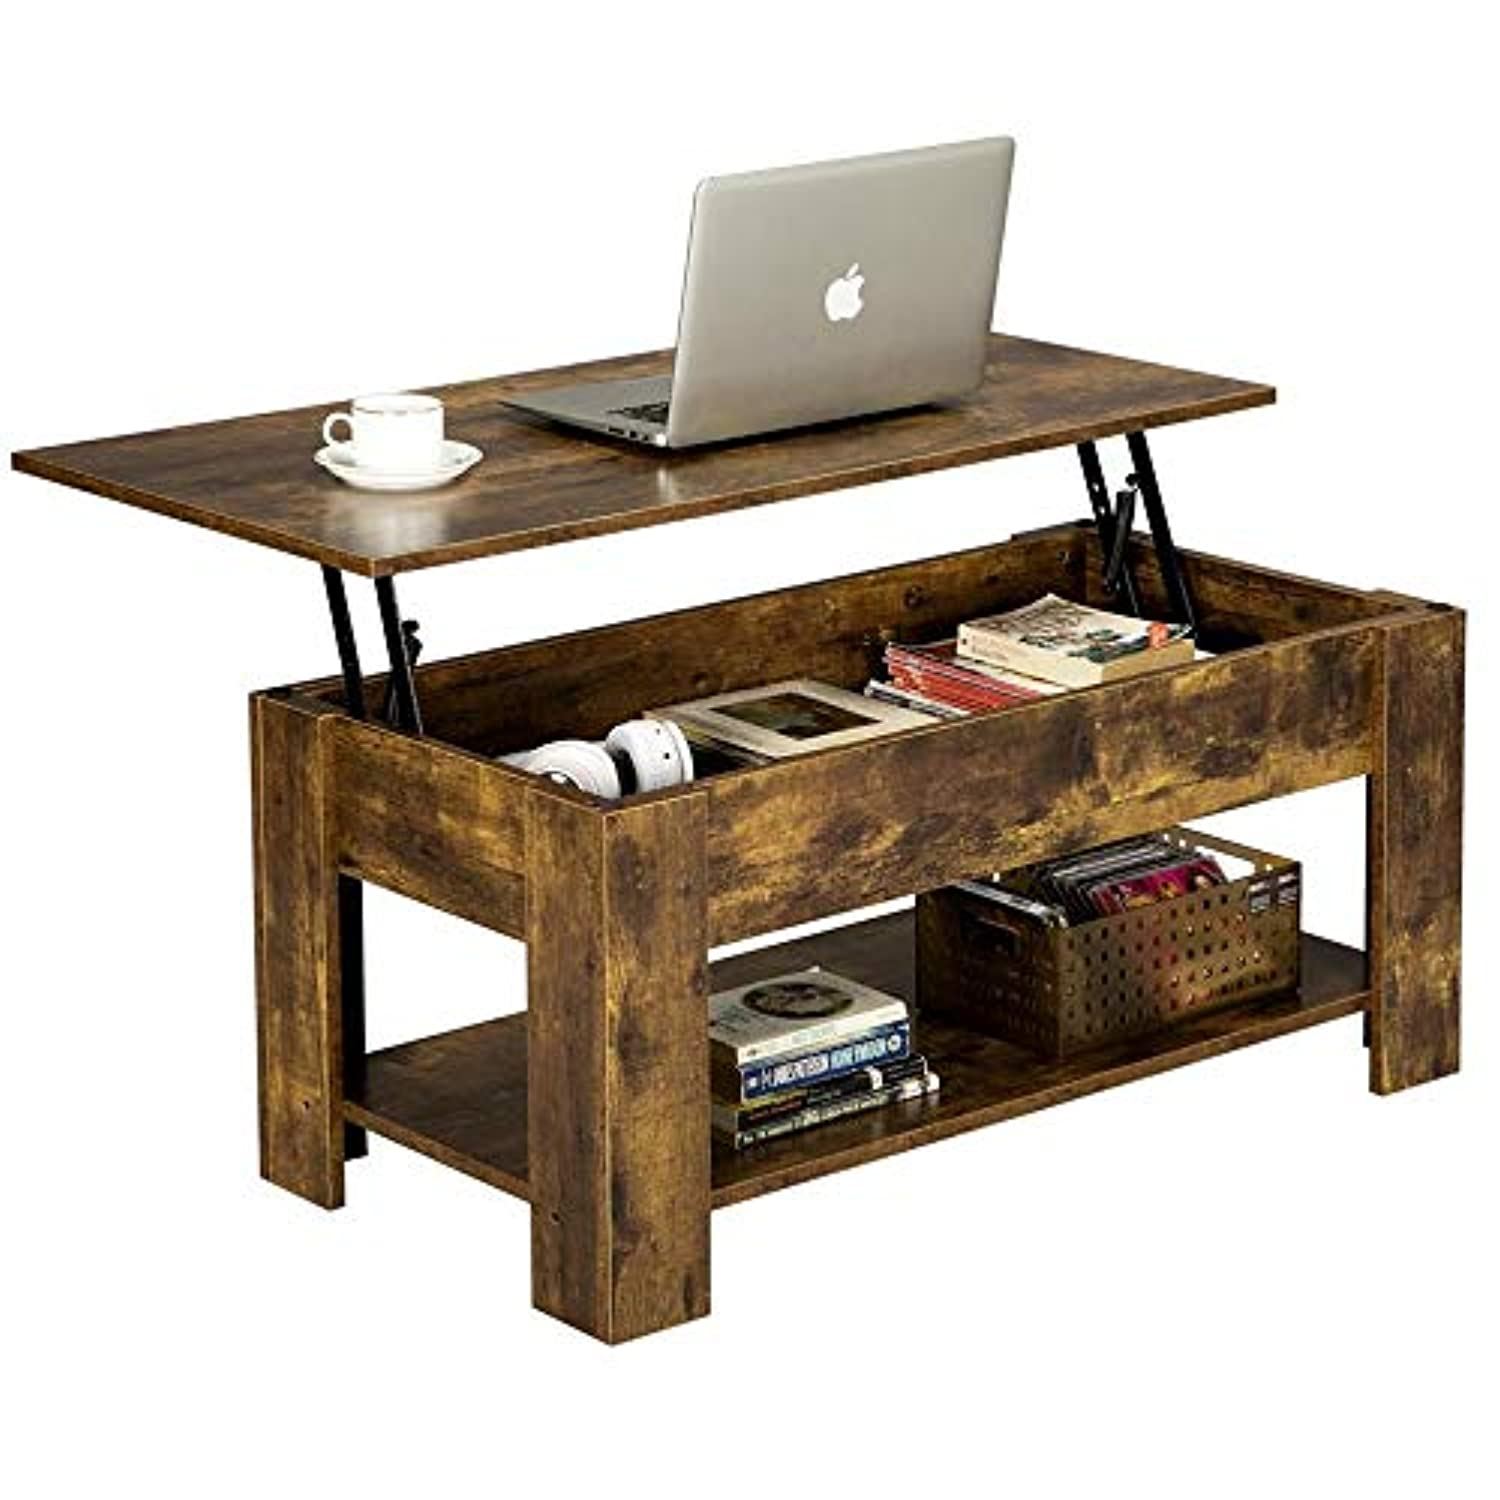 Rustic Lift Top Coffee Table + Compartment & Storage Space